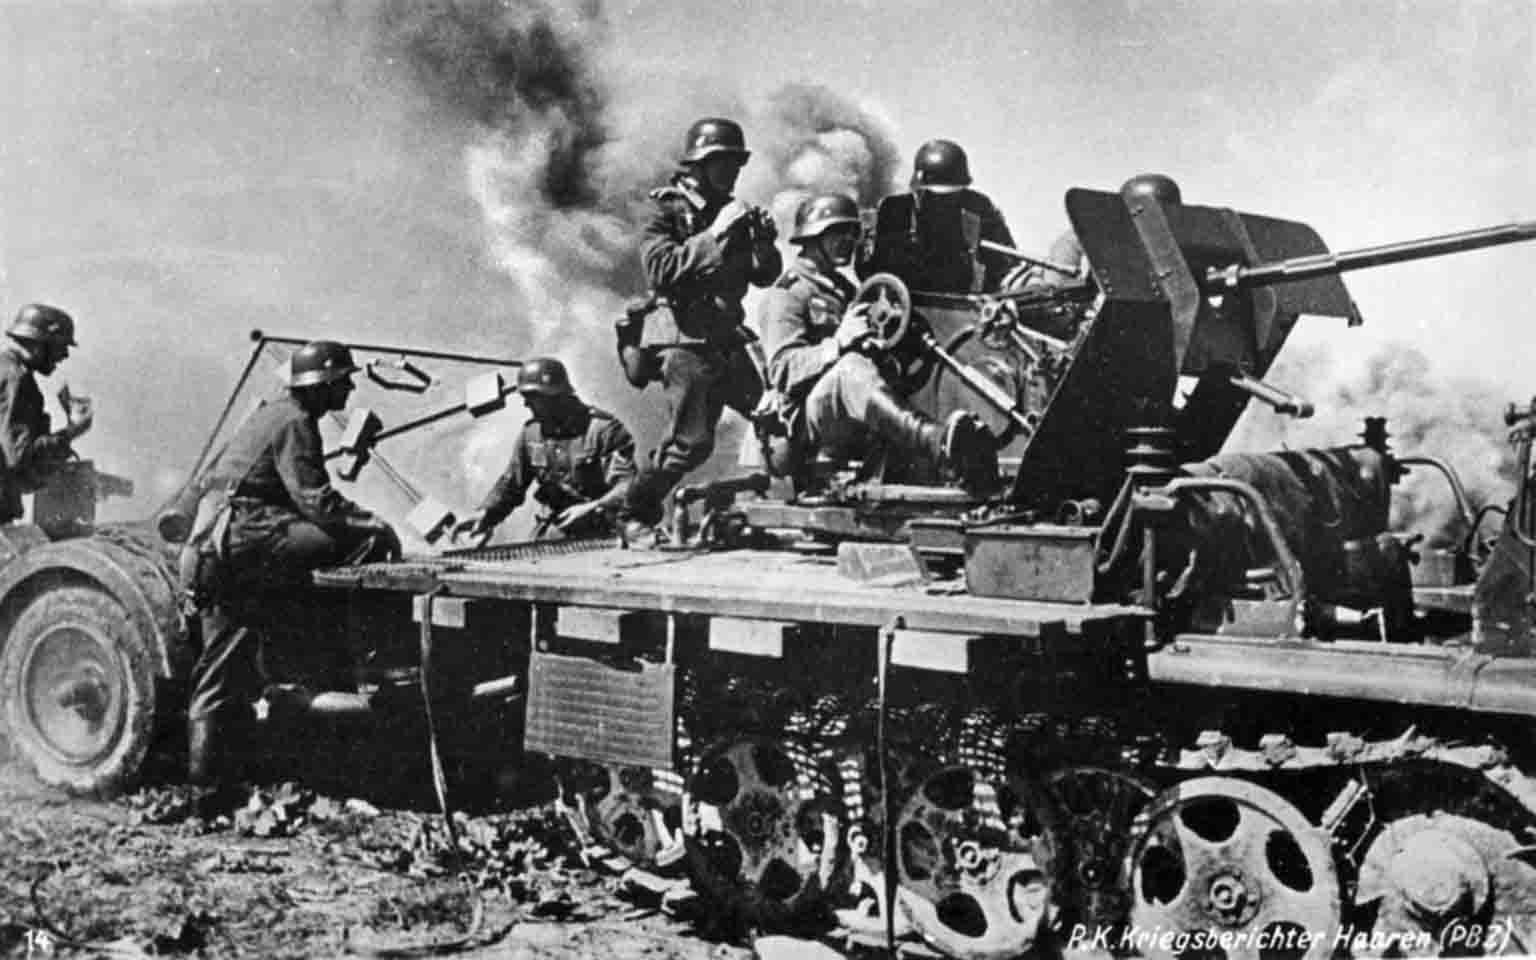 World War II - FlaK 30